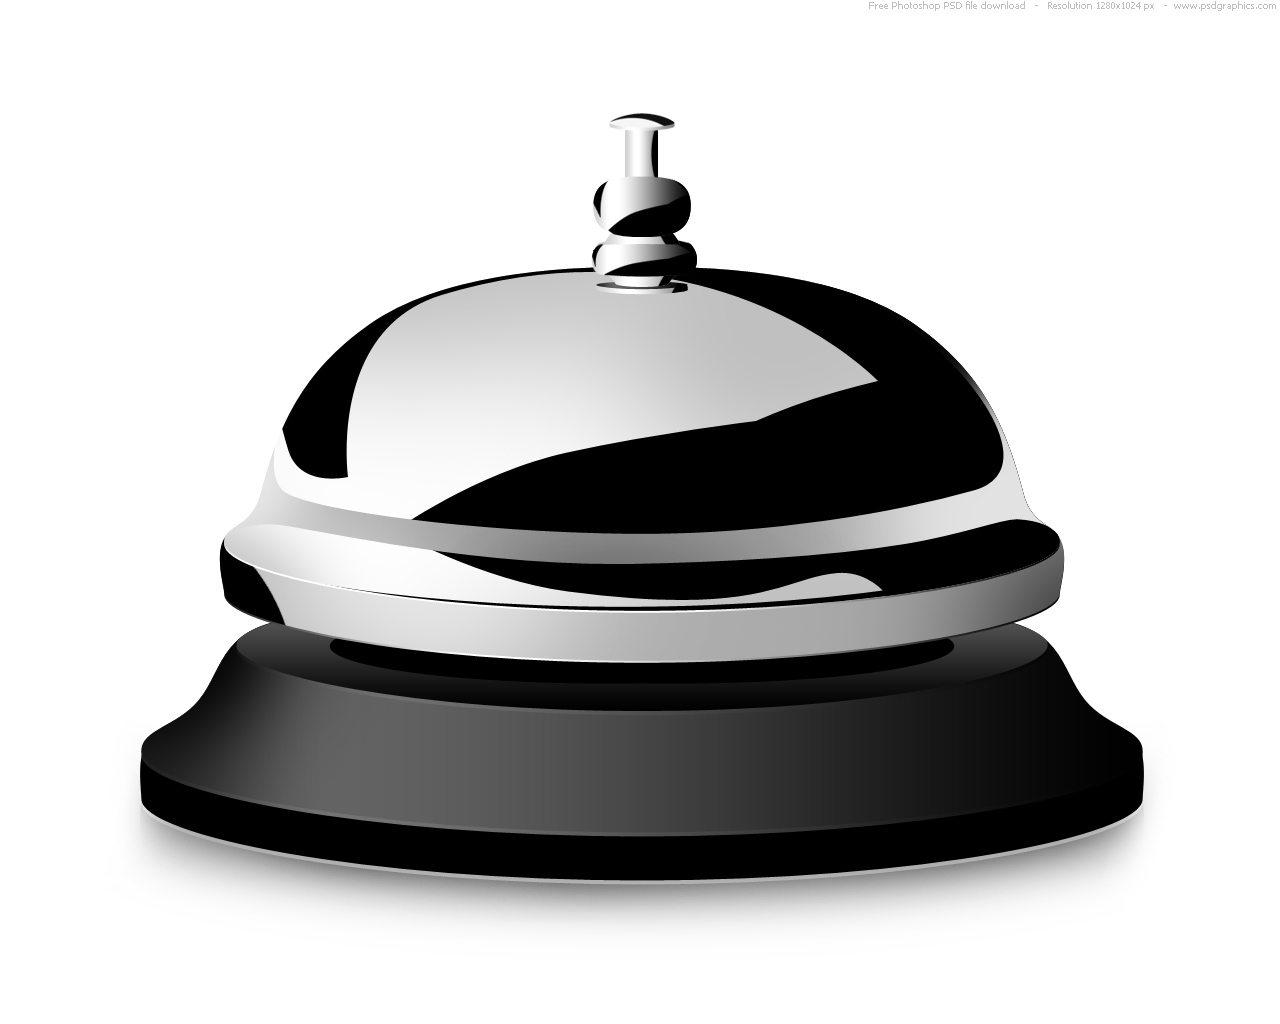 15 Desk Bell Icon Images